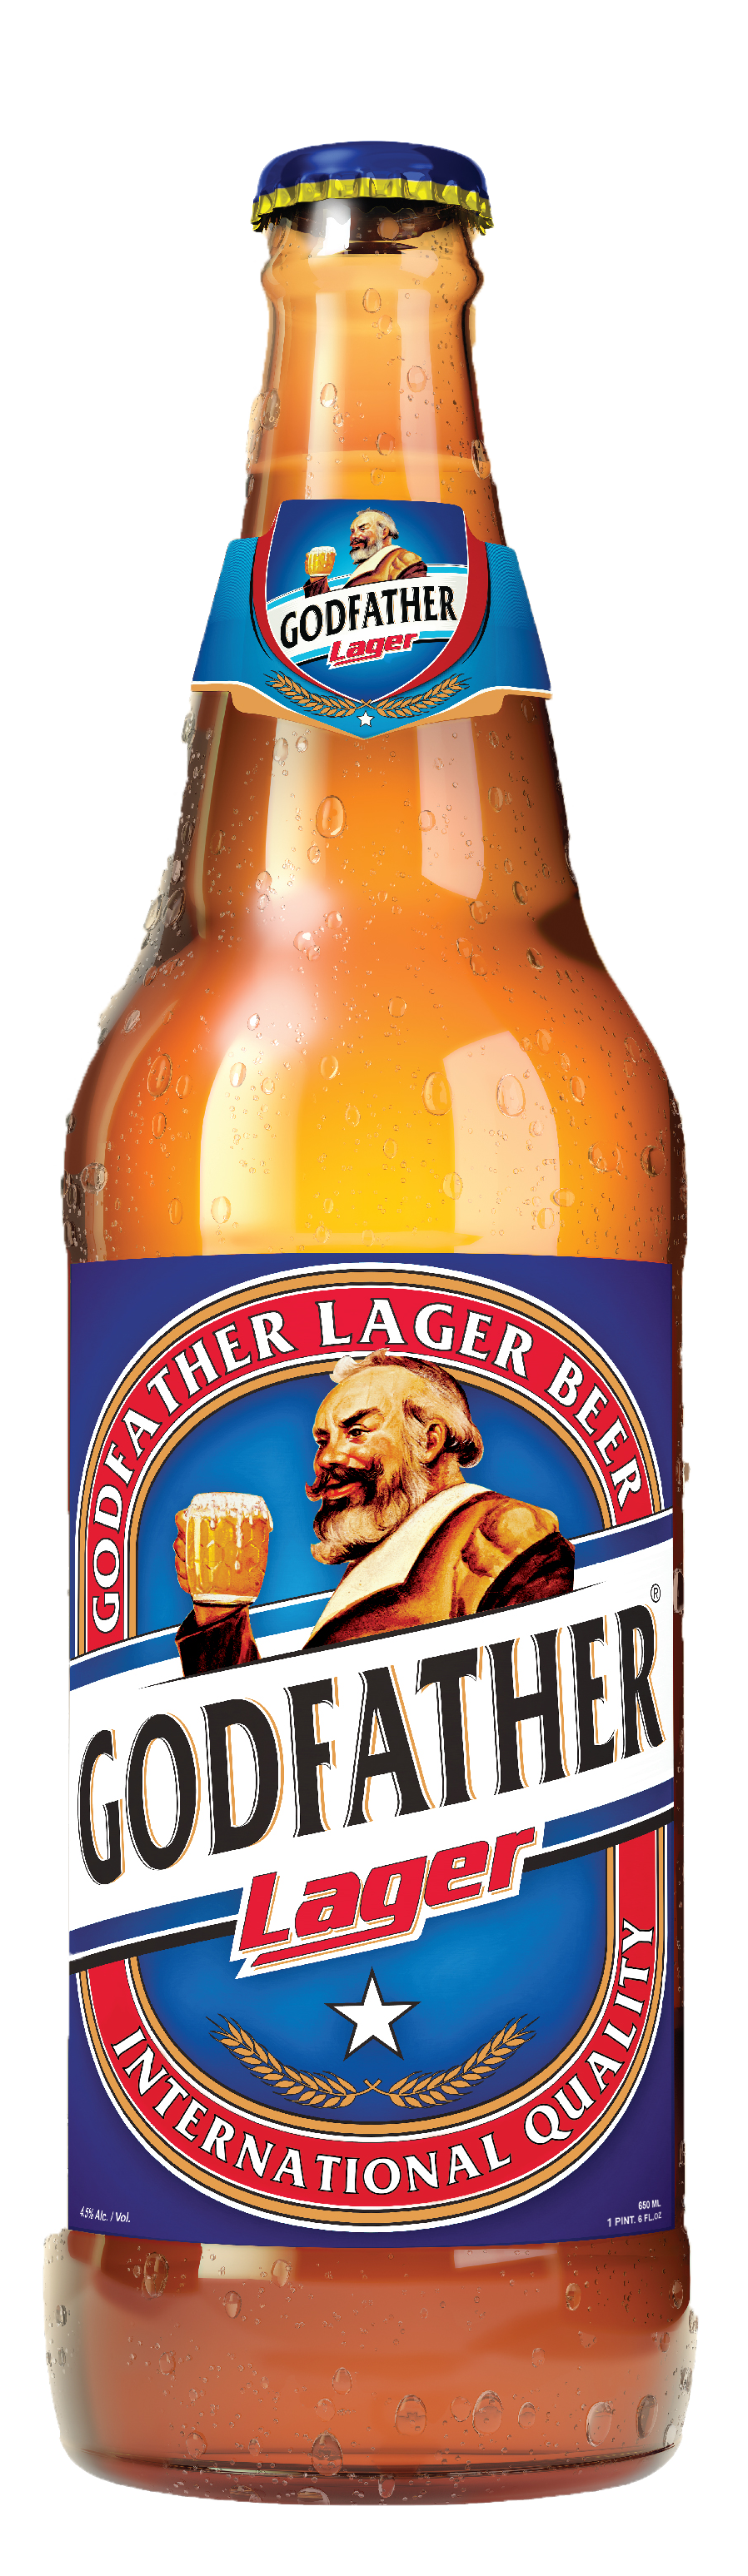 Lager International Quality